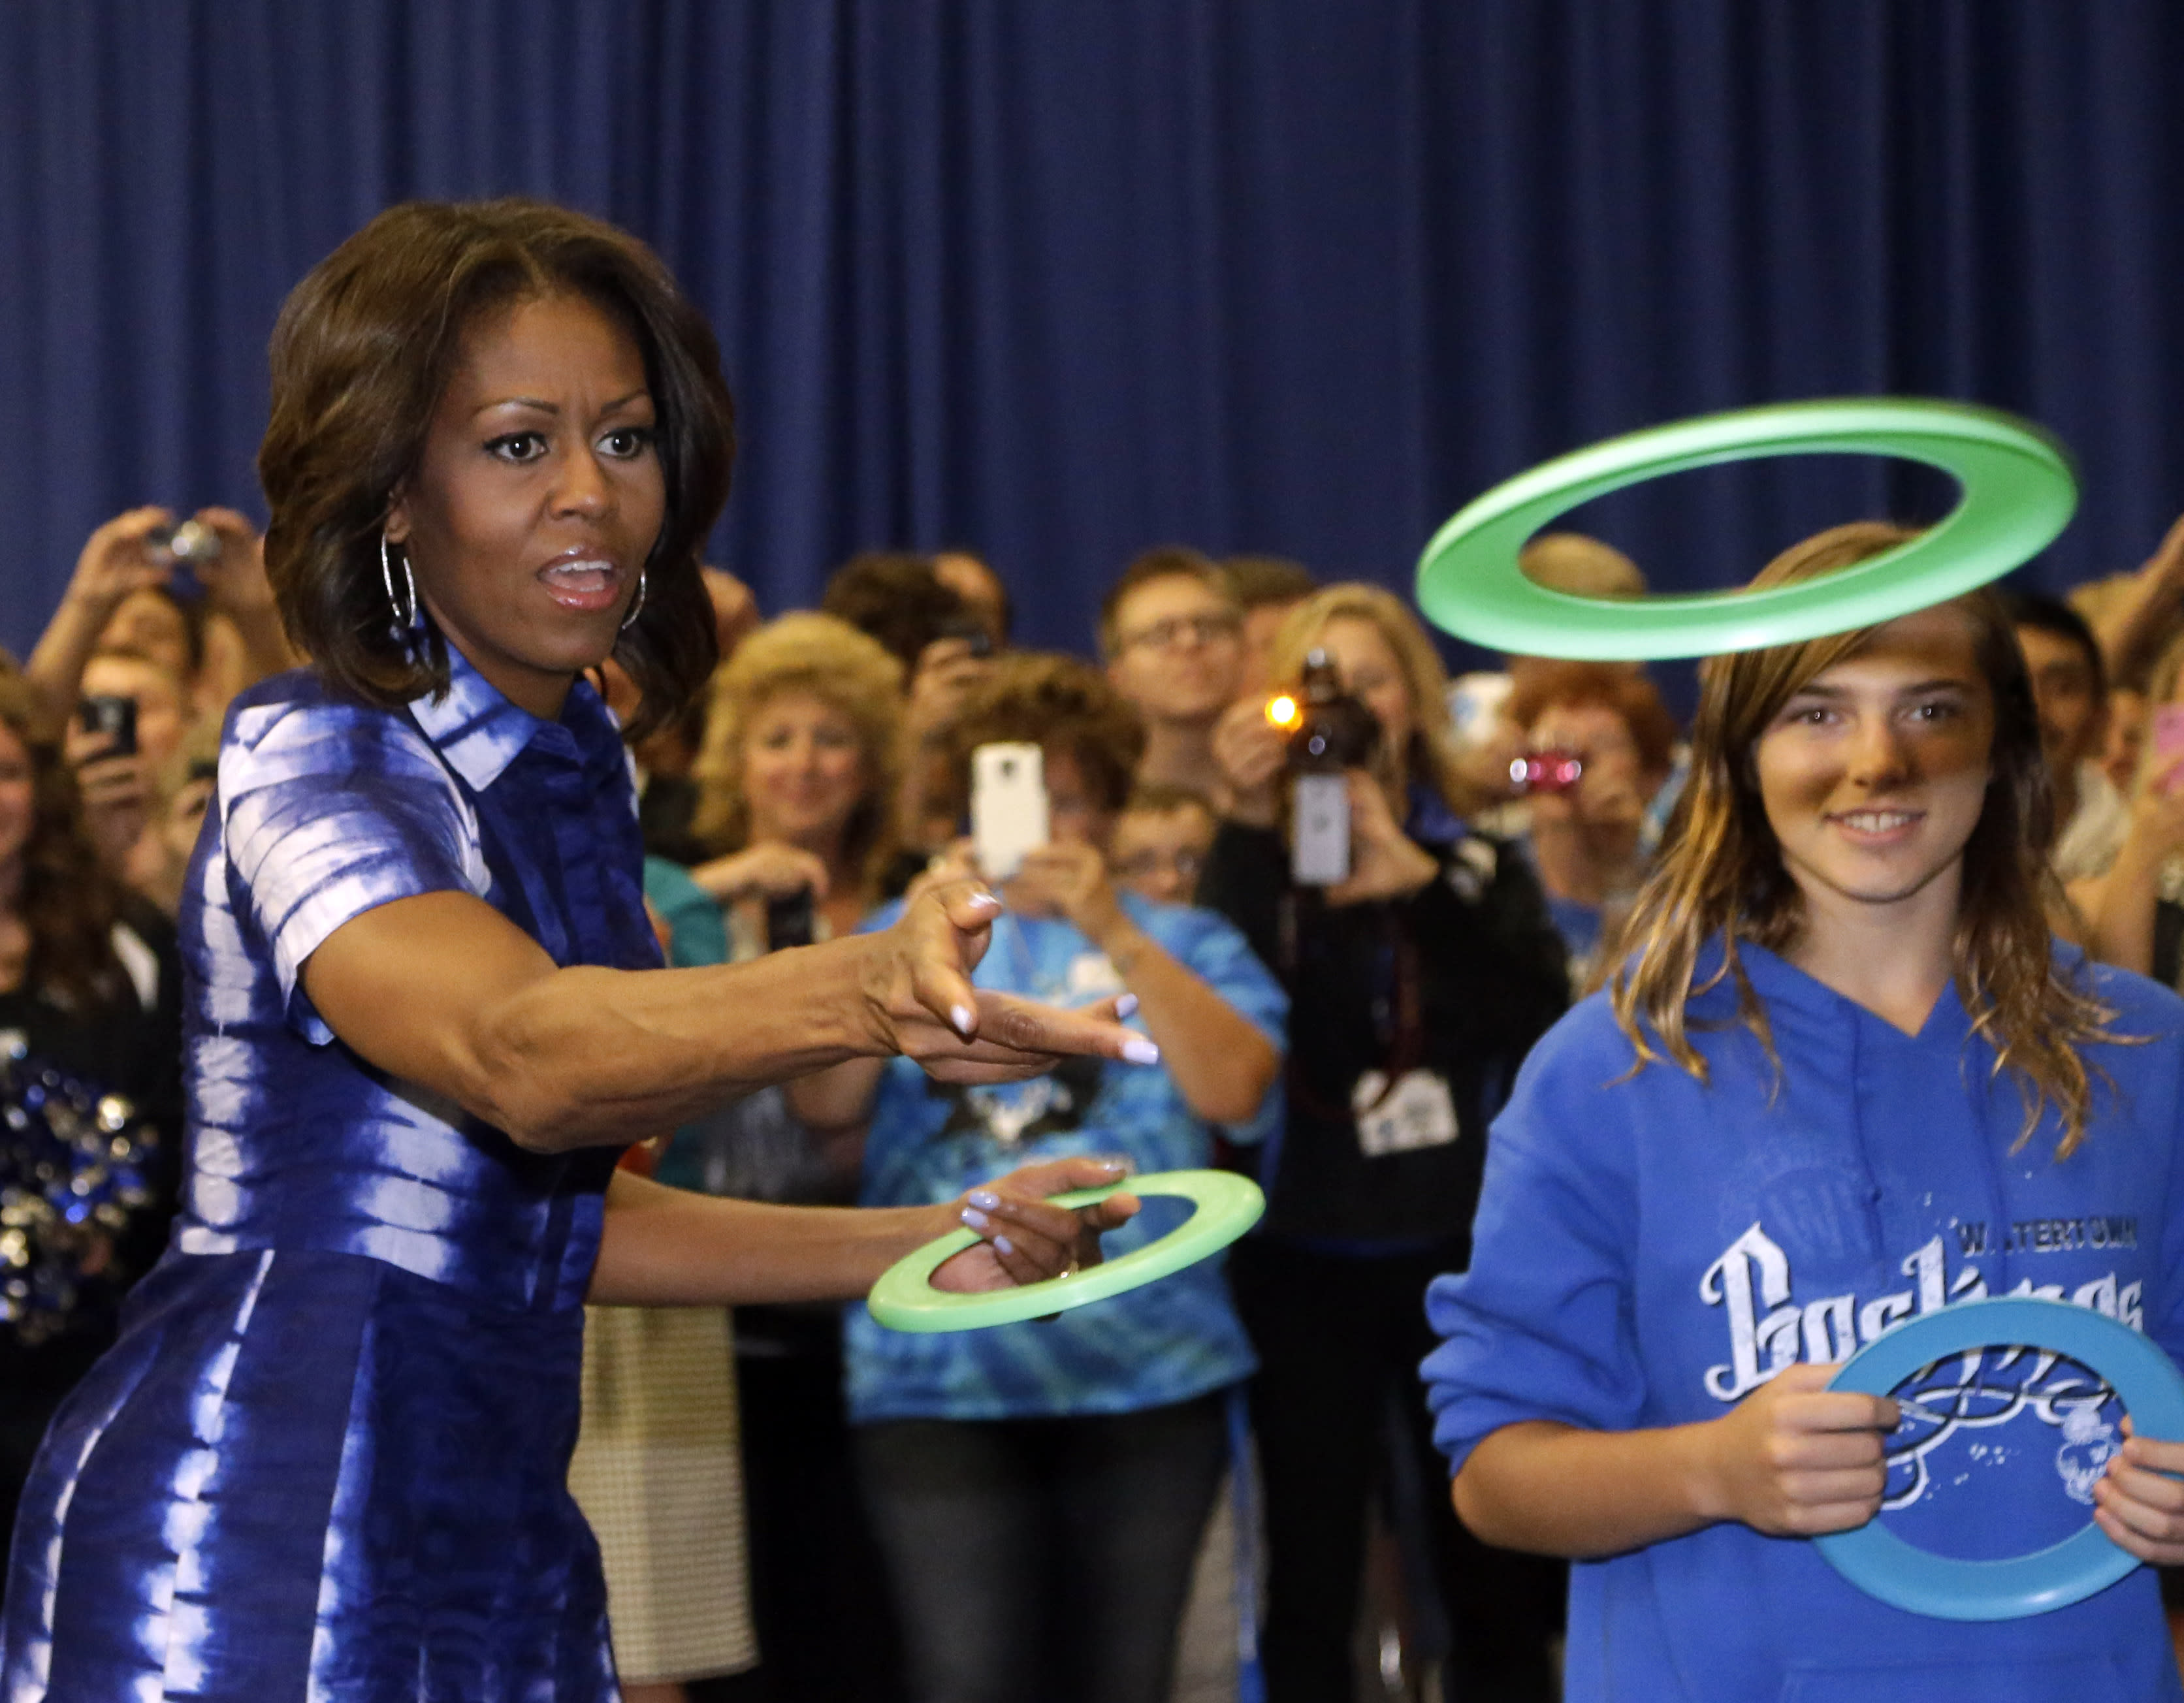 First Lady Michelle Obama partakes in an event at Watertown High School to encourage people to drink more water, Thursday, Sept. 12, 2013, in Watertown, Wis. (AP Photo/Morry Gash)